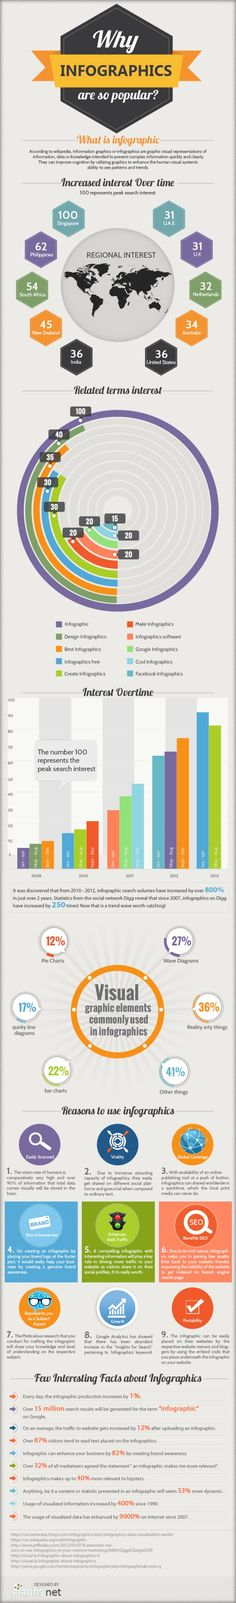 How popular are Infographics? [Infographic] - Smart Insights Digital Marketing Advice